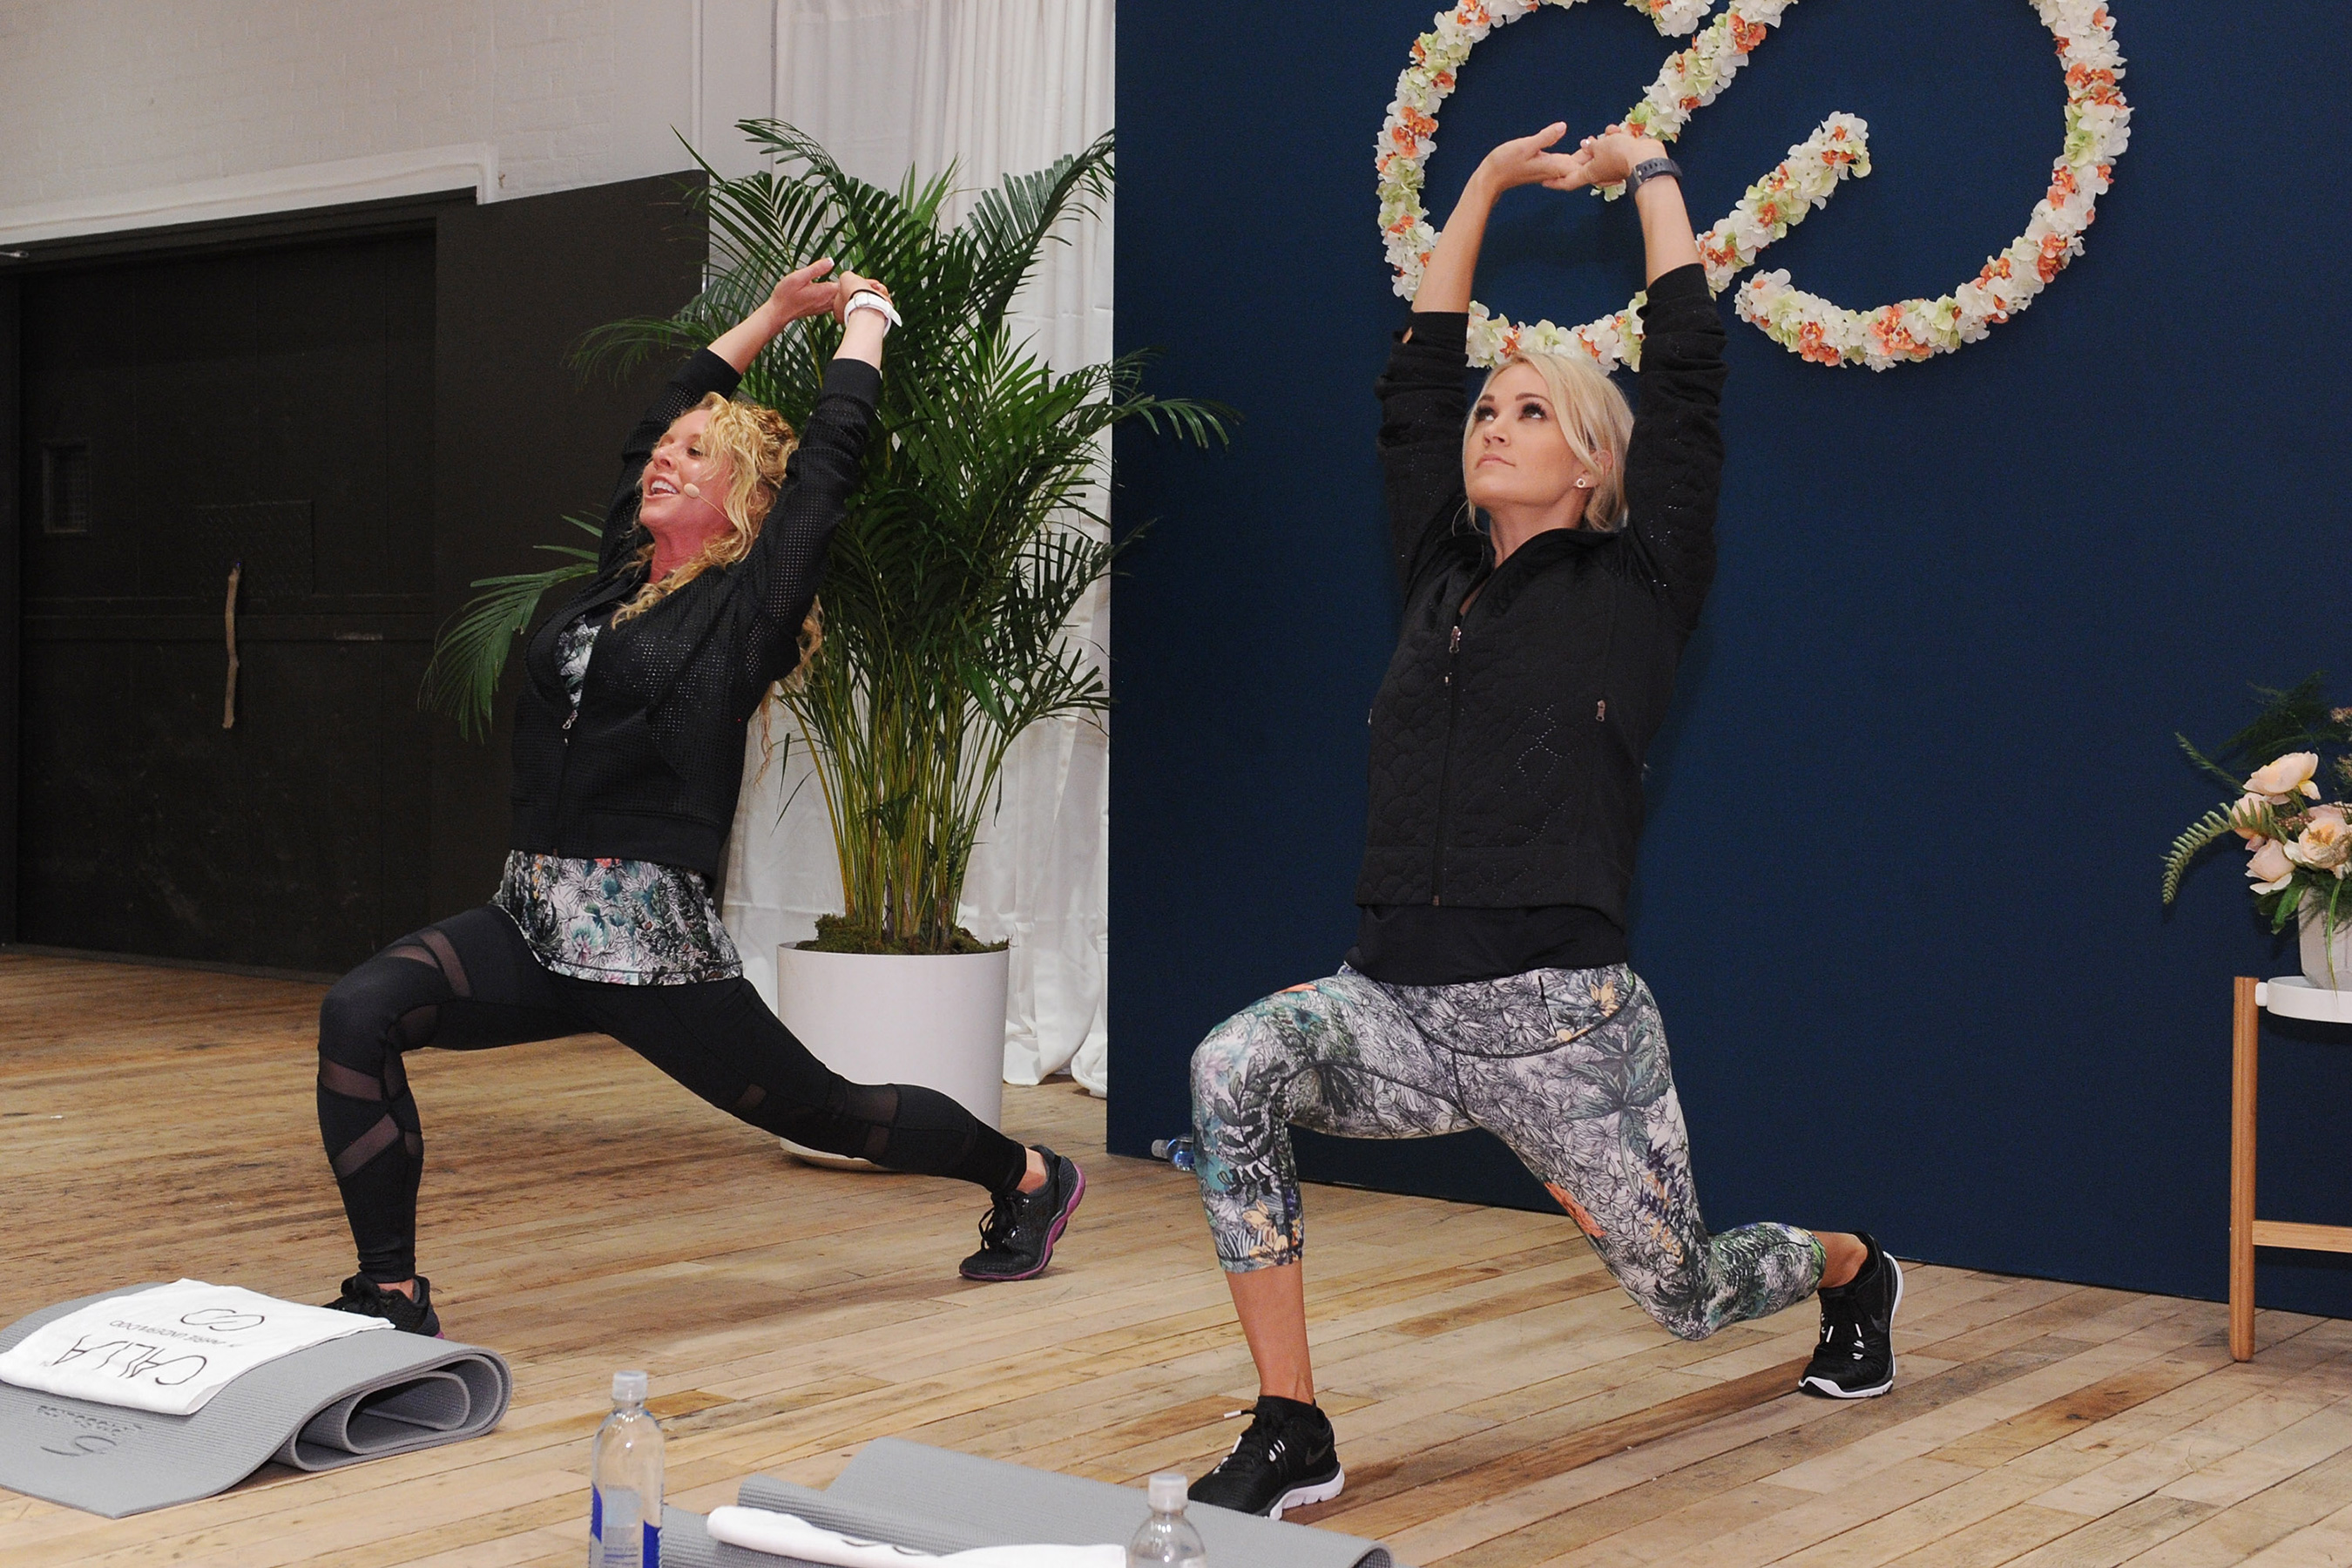 NEW YORK, NY - SEPTEMBER 11: CALIA lead designer, Carrie Underwood and her road trainer, Eve Overland lead a group workout to celebrate the line's Fall/Winter 17 collection at West Edge on September 11, 2017 in New York City. (Photo by Craig Barritt/Getty Images for Calia)